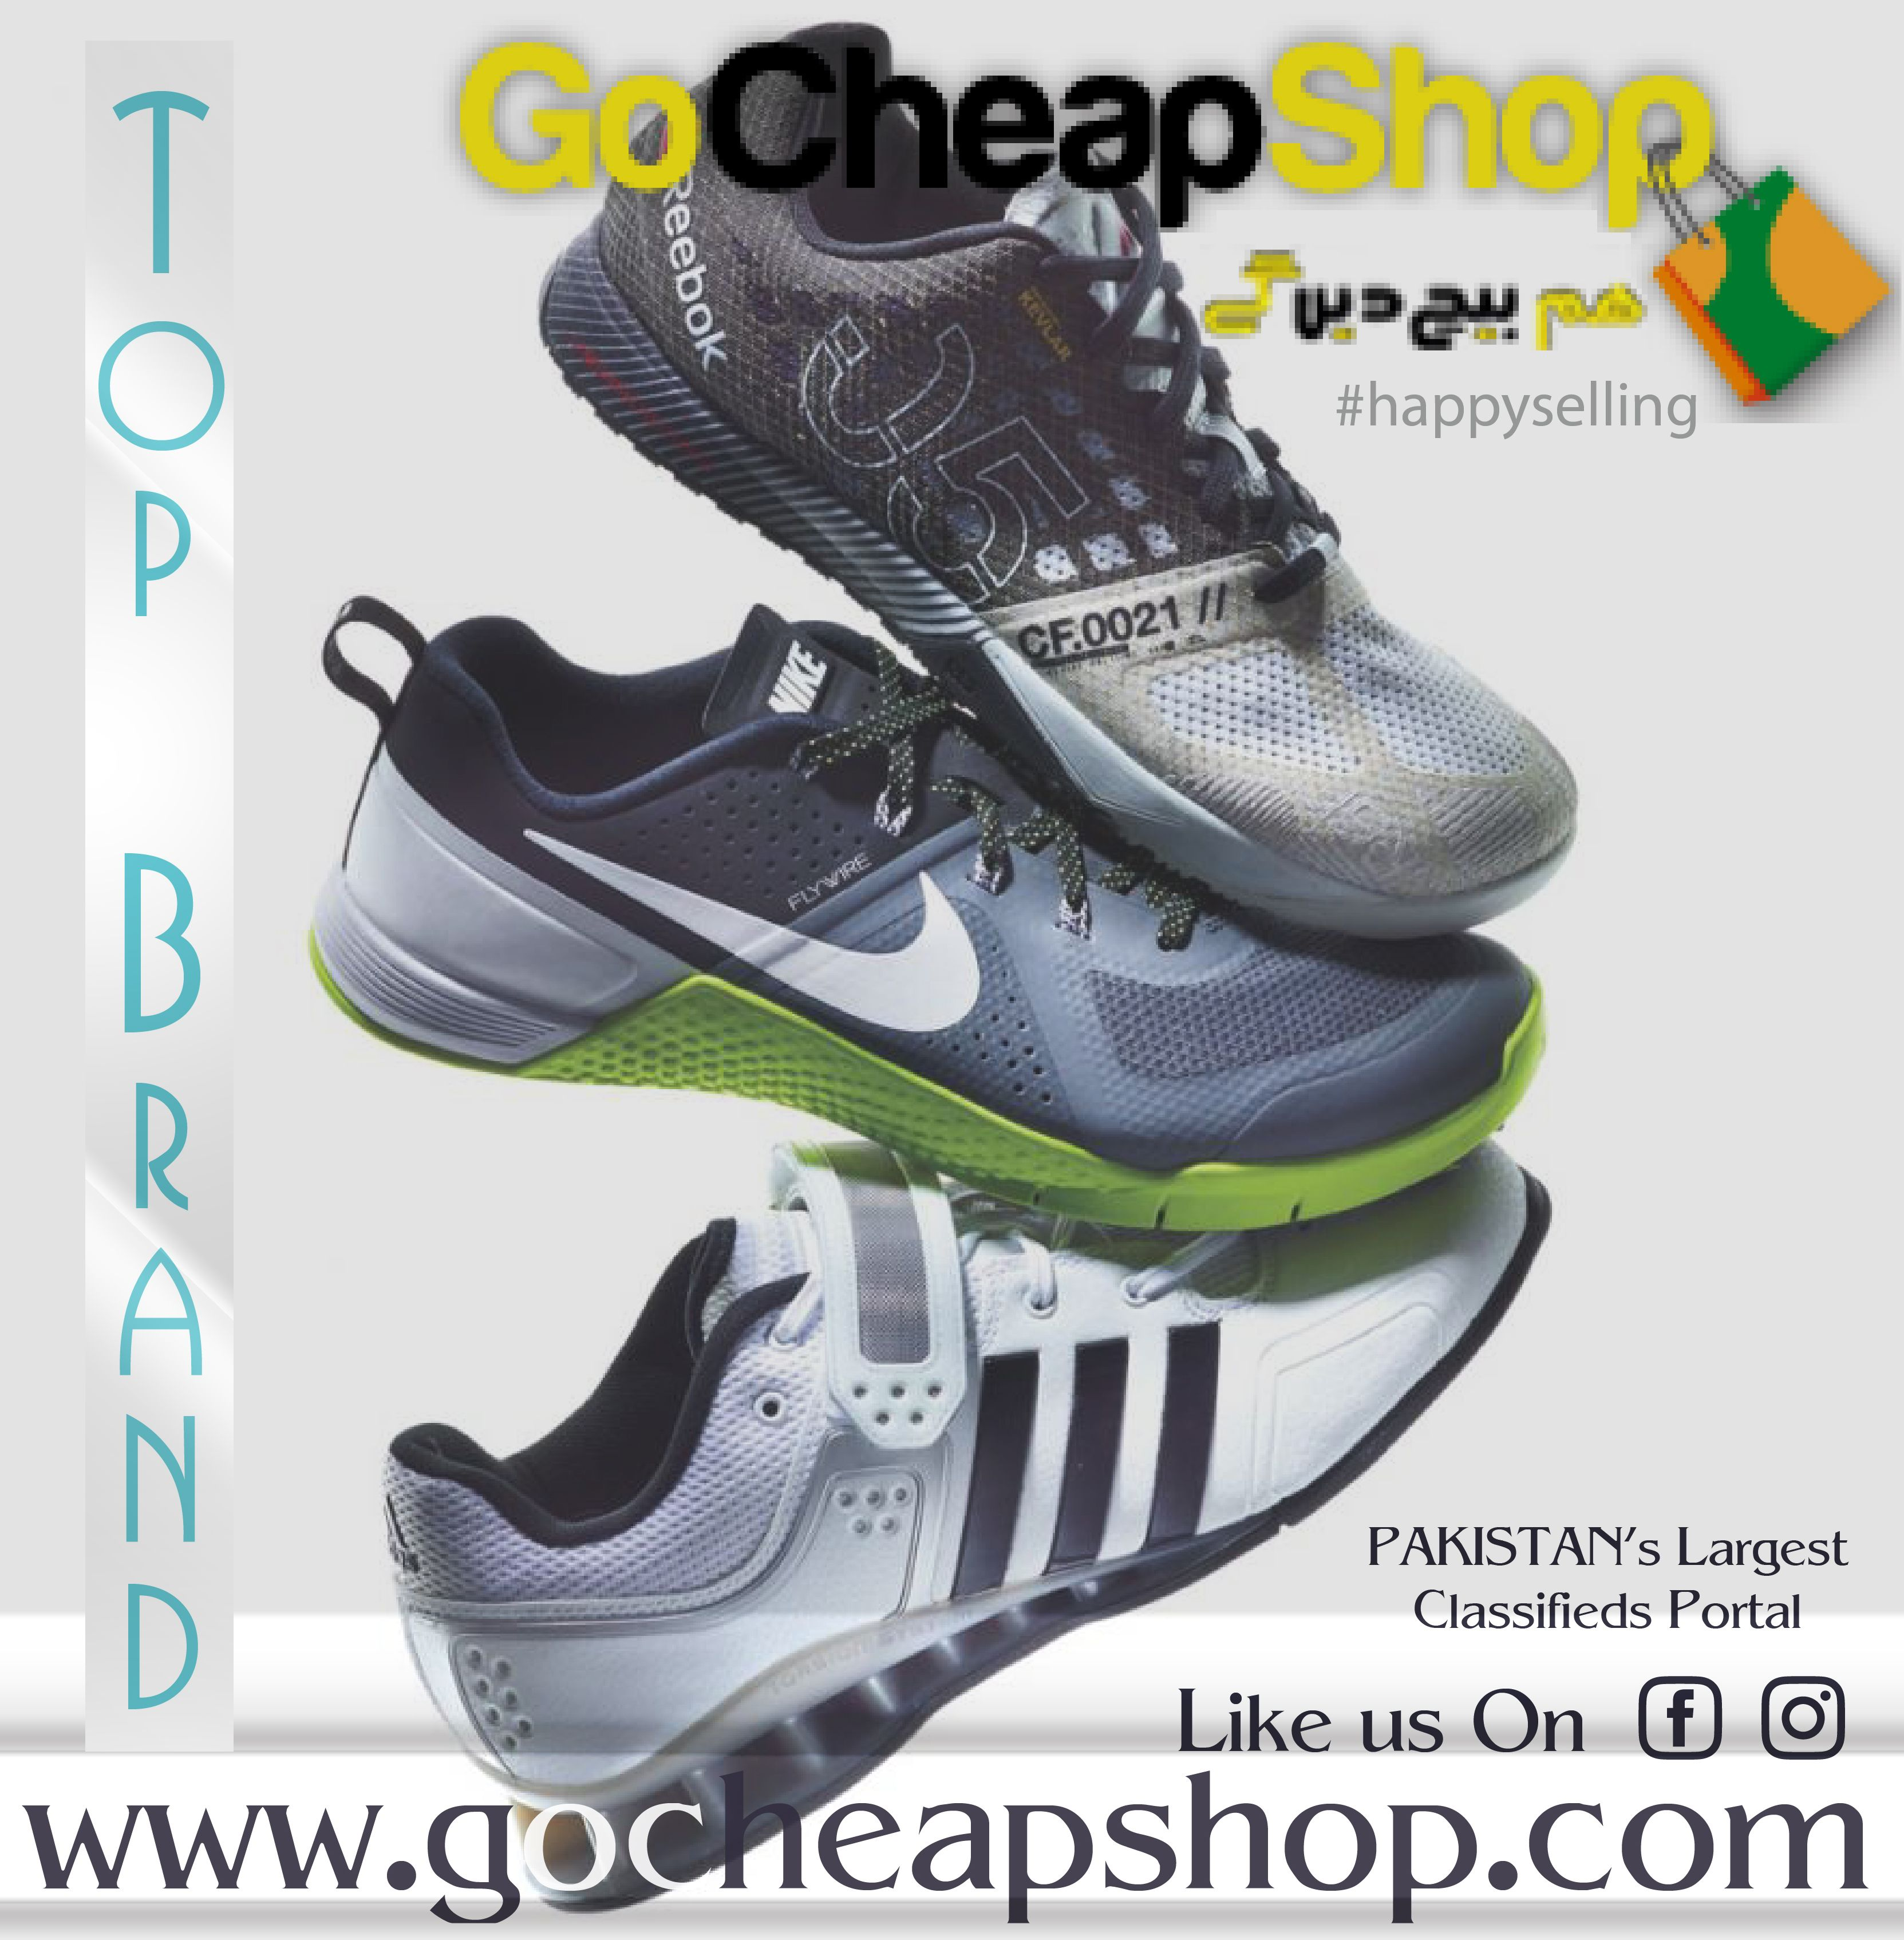 'Top #shoebrands'  Their logos enhance the shoes worn by the most celebrated competitors on the planet. They really offer for the privilege to give a competitor the footwear he would use for his rivalries. *NIKE! *ADIDAS! *REEBOK!